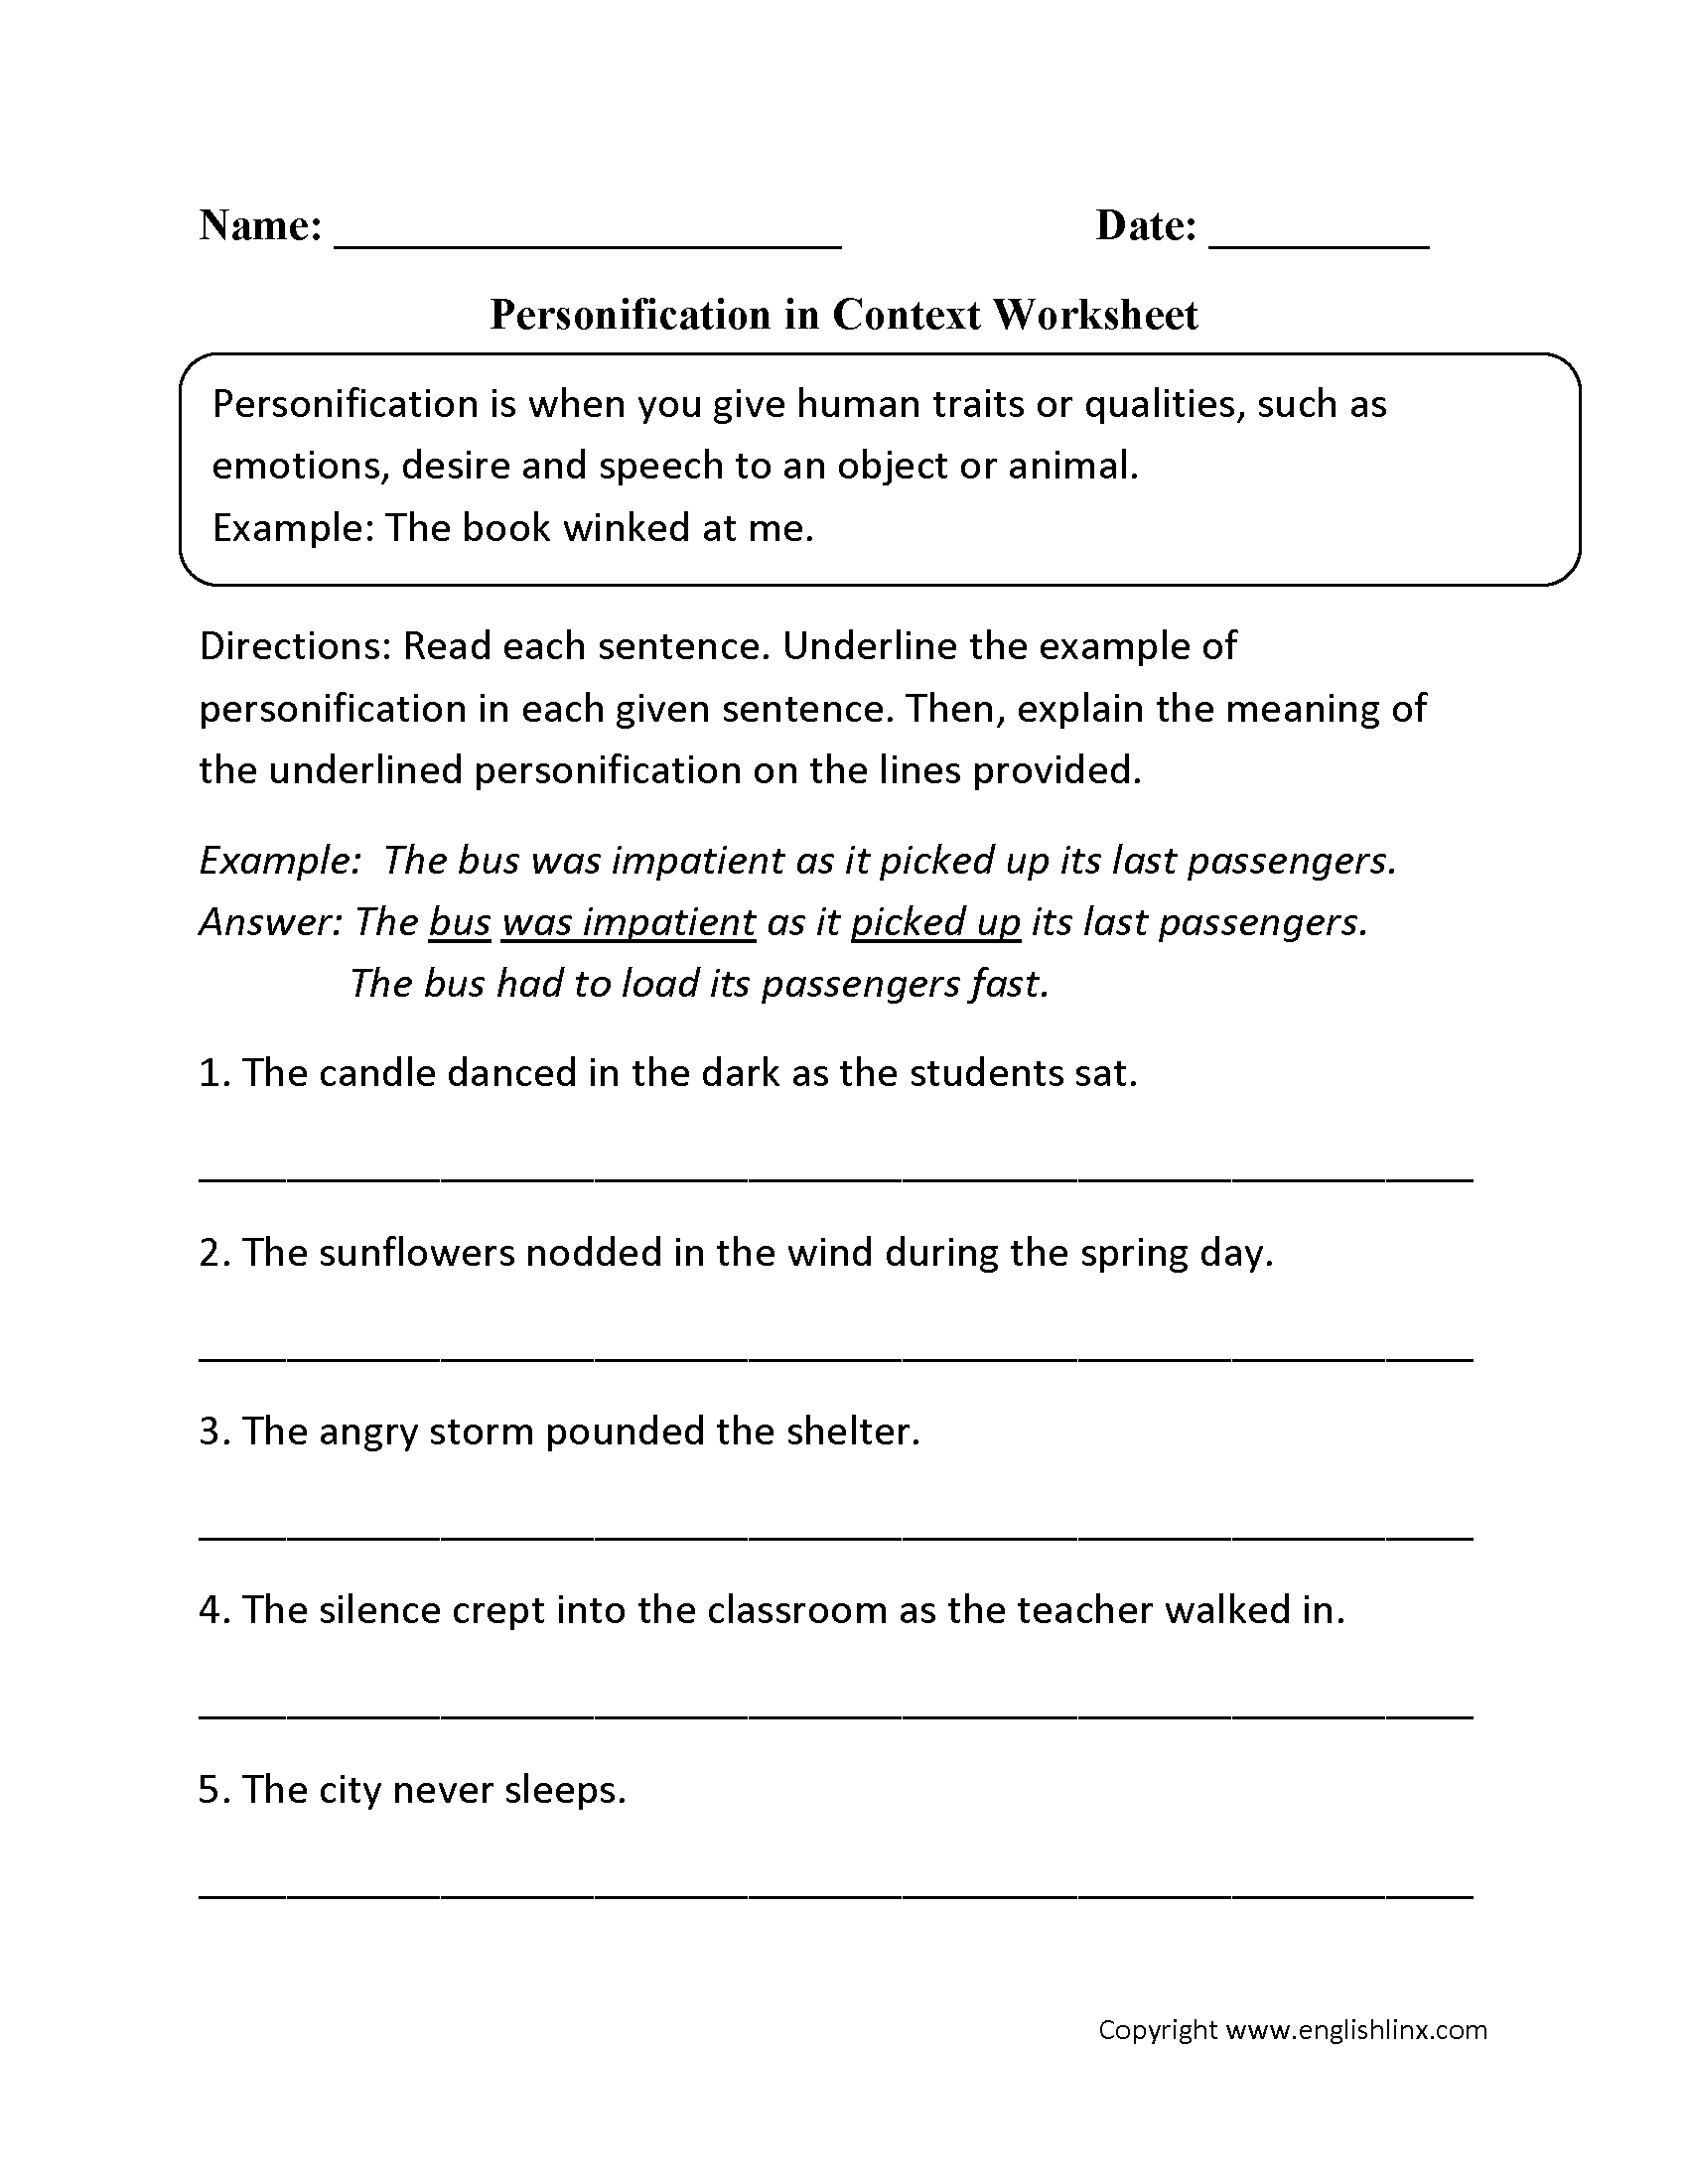 Printables Personification Worksheets figurative language worksheets personification in context worksheet